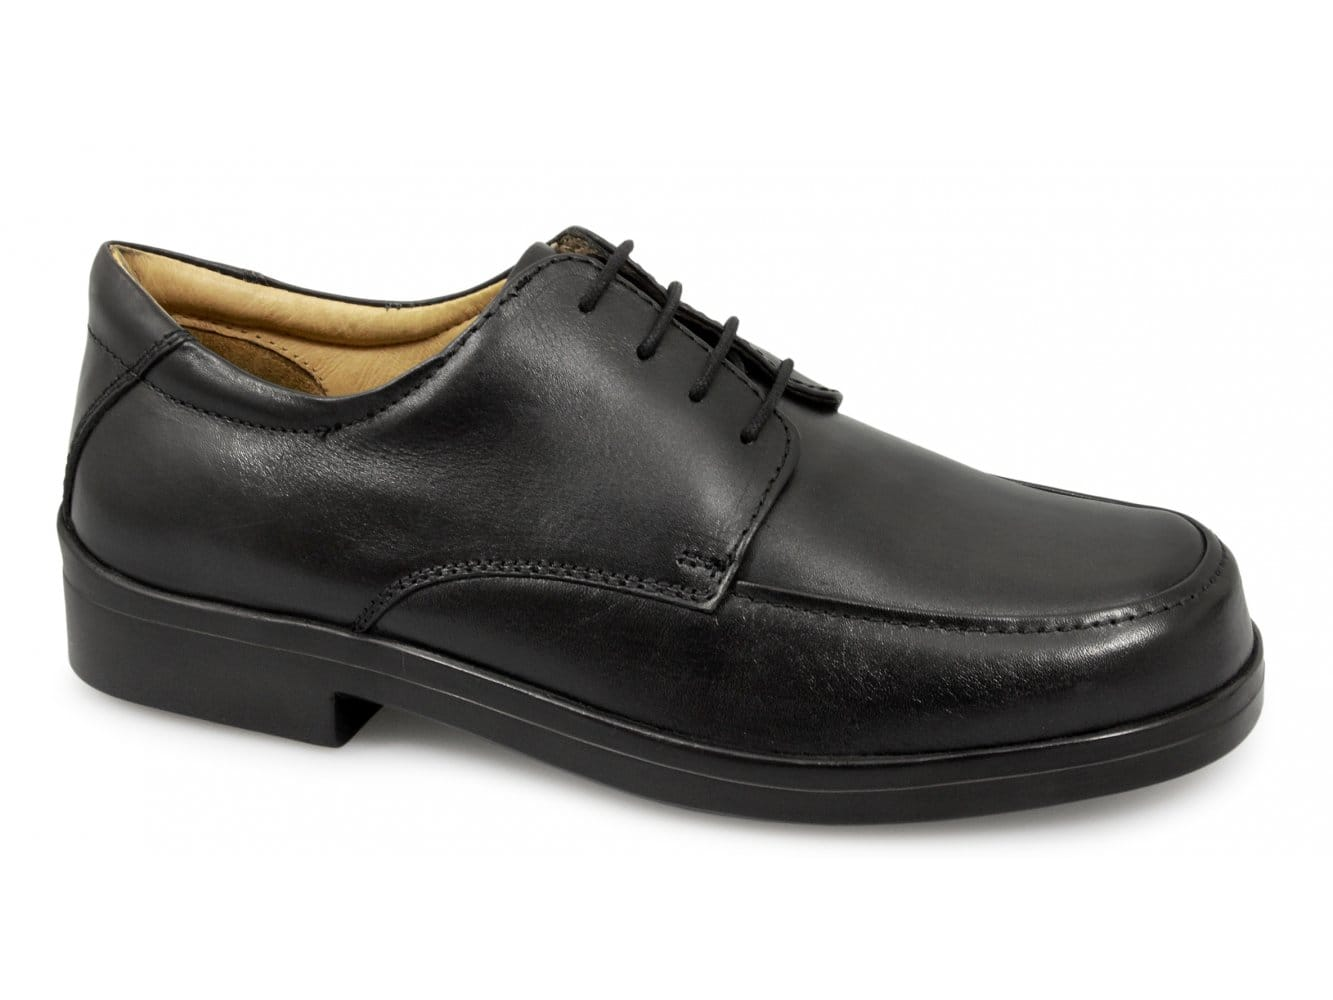 a3faf3588be Roamers Mens Lace-Up EEE Extra Wide Fit Shoes Black